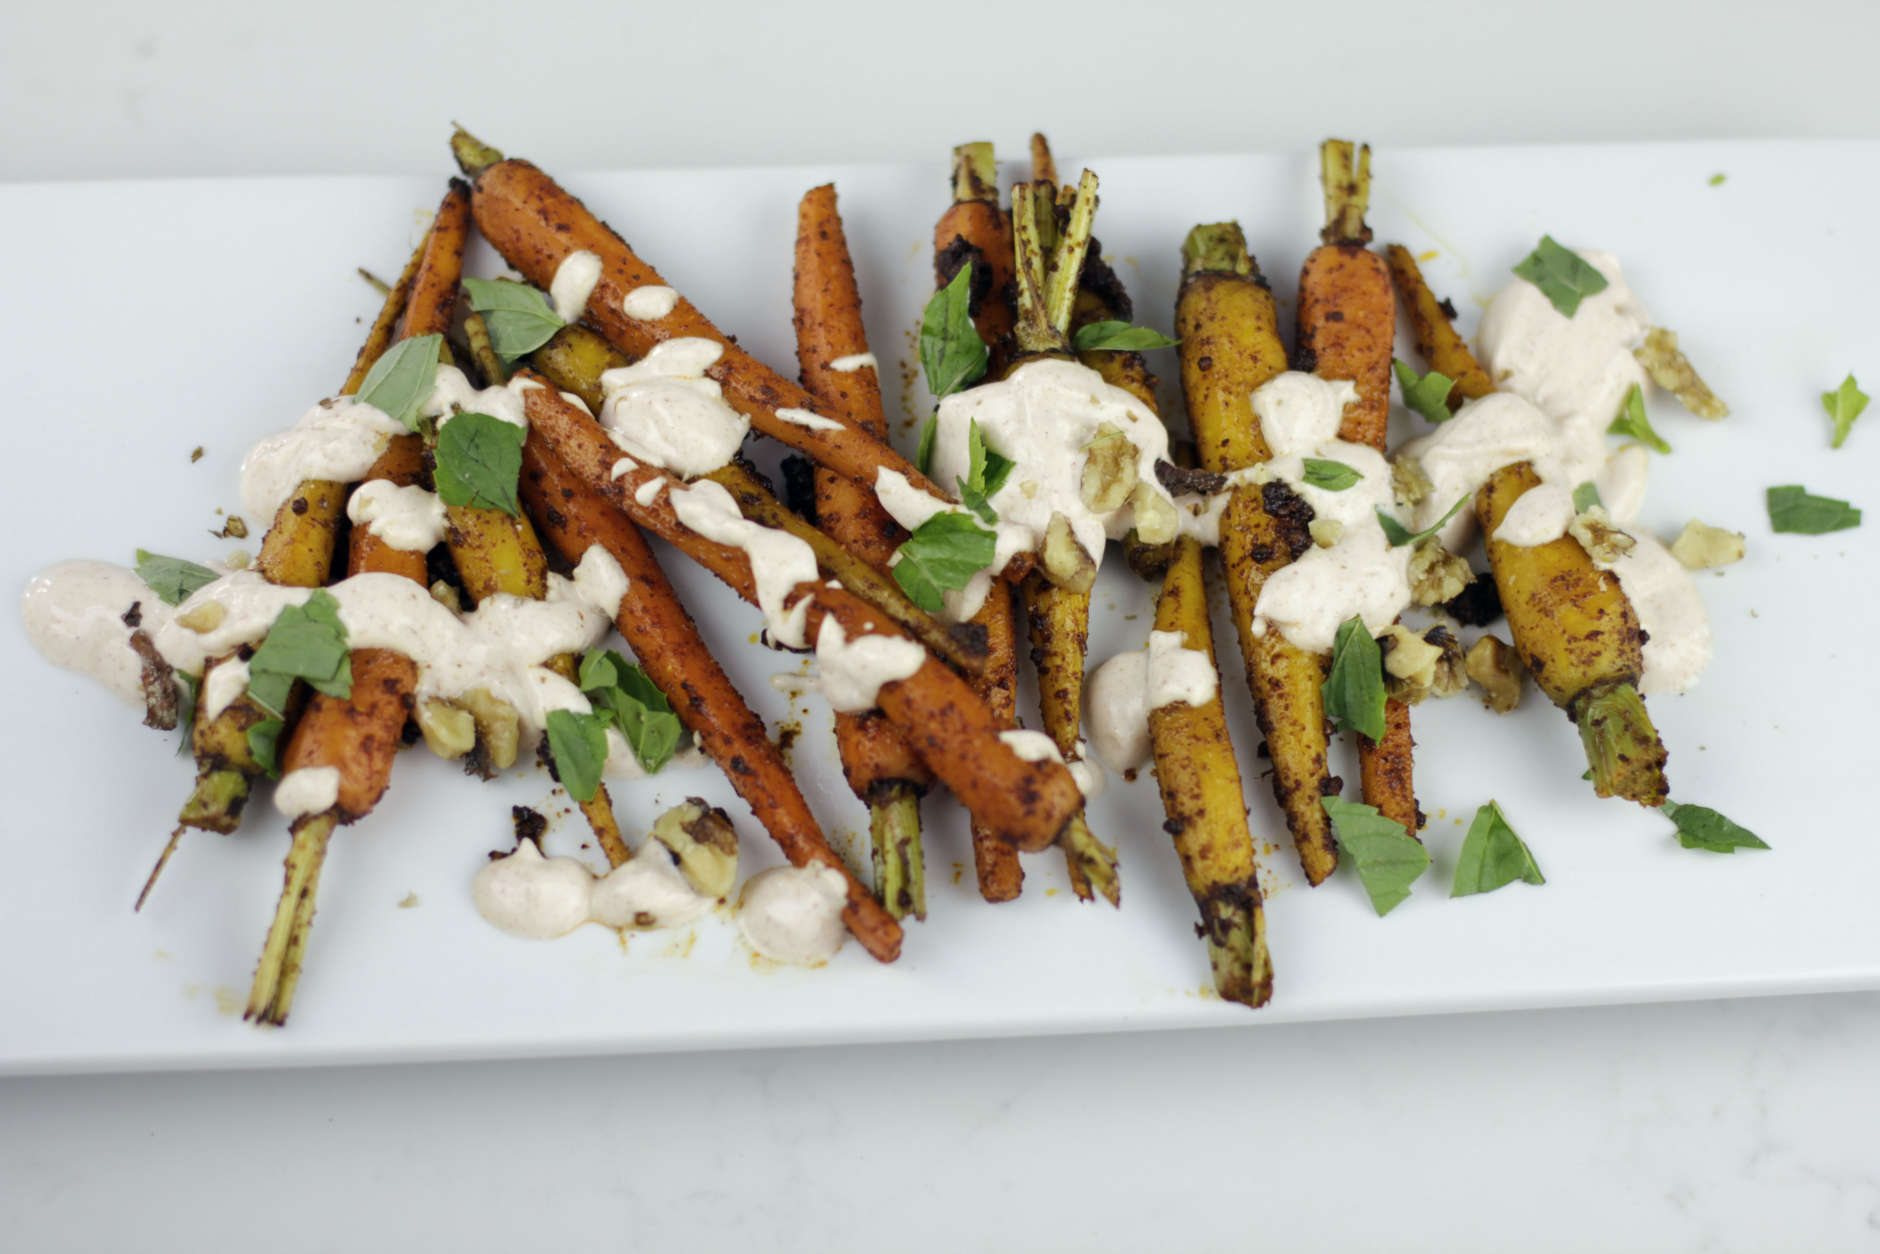 This July 12, 2016 photo shows Moroccan spiced carrots with yogurt sauce in Coronado, Calif. This dish is from a recipe by Melissa d'Arabian. (Melissa d'Arabian via AP)